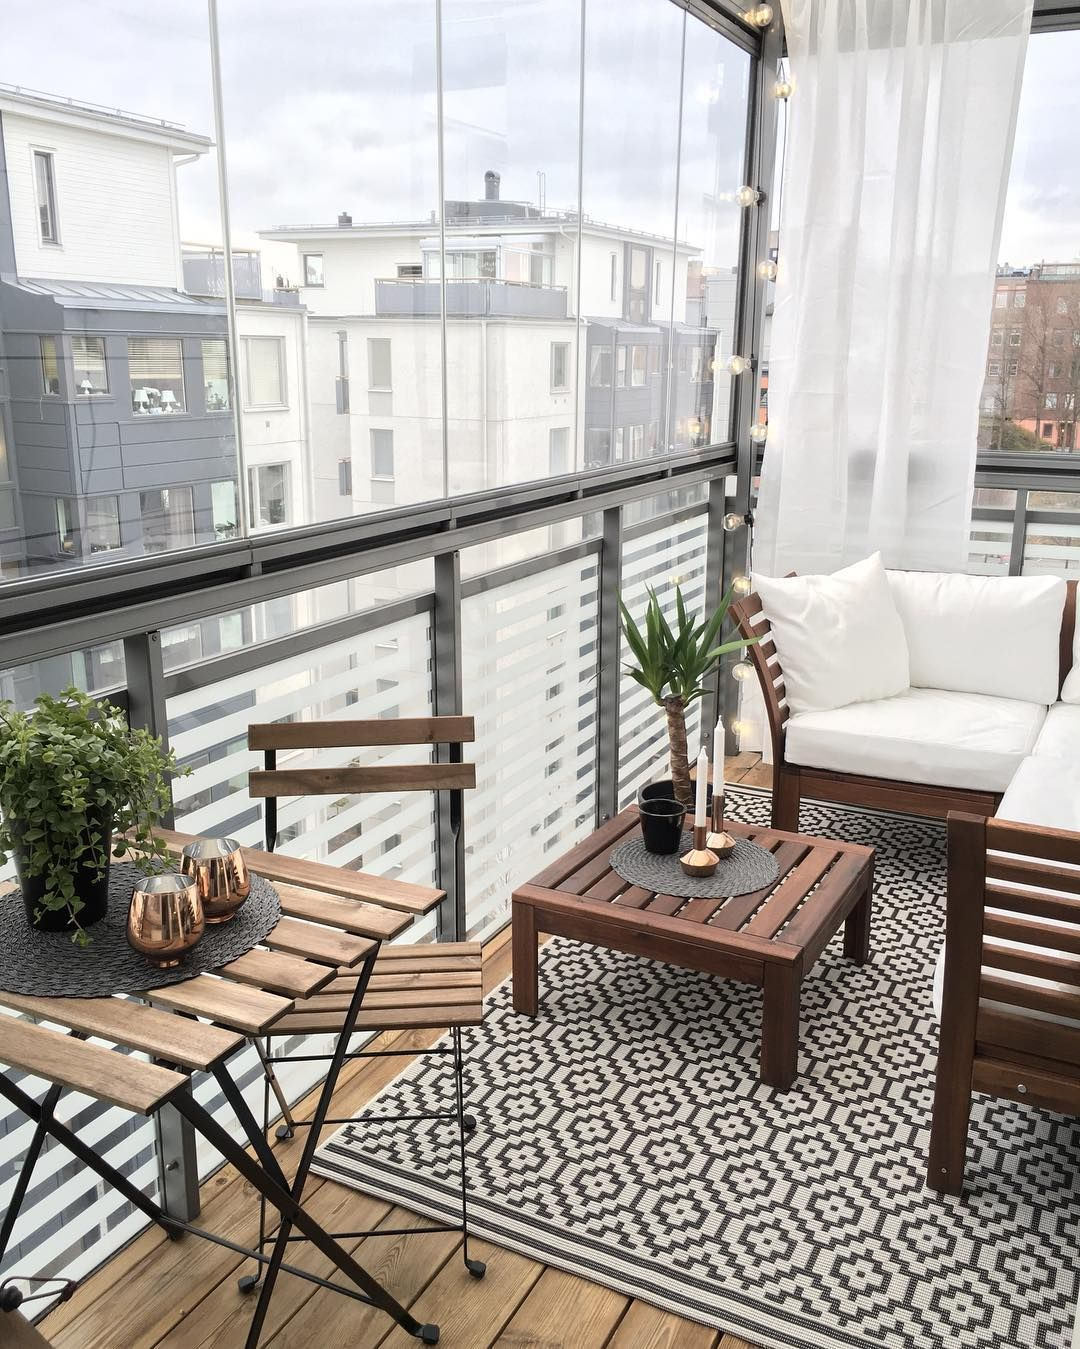 einfach und sch n ein einfach sch ner balkon balkon. Black Bedroom Furniture Sets. Home Design Ideas